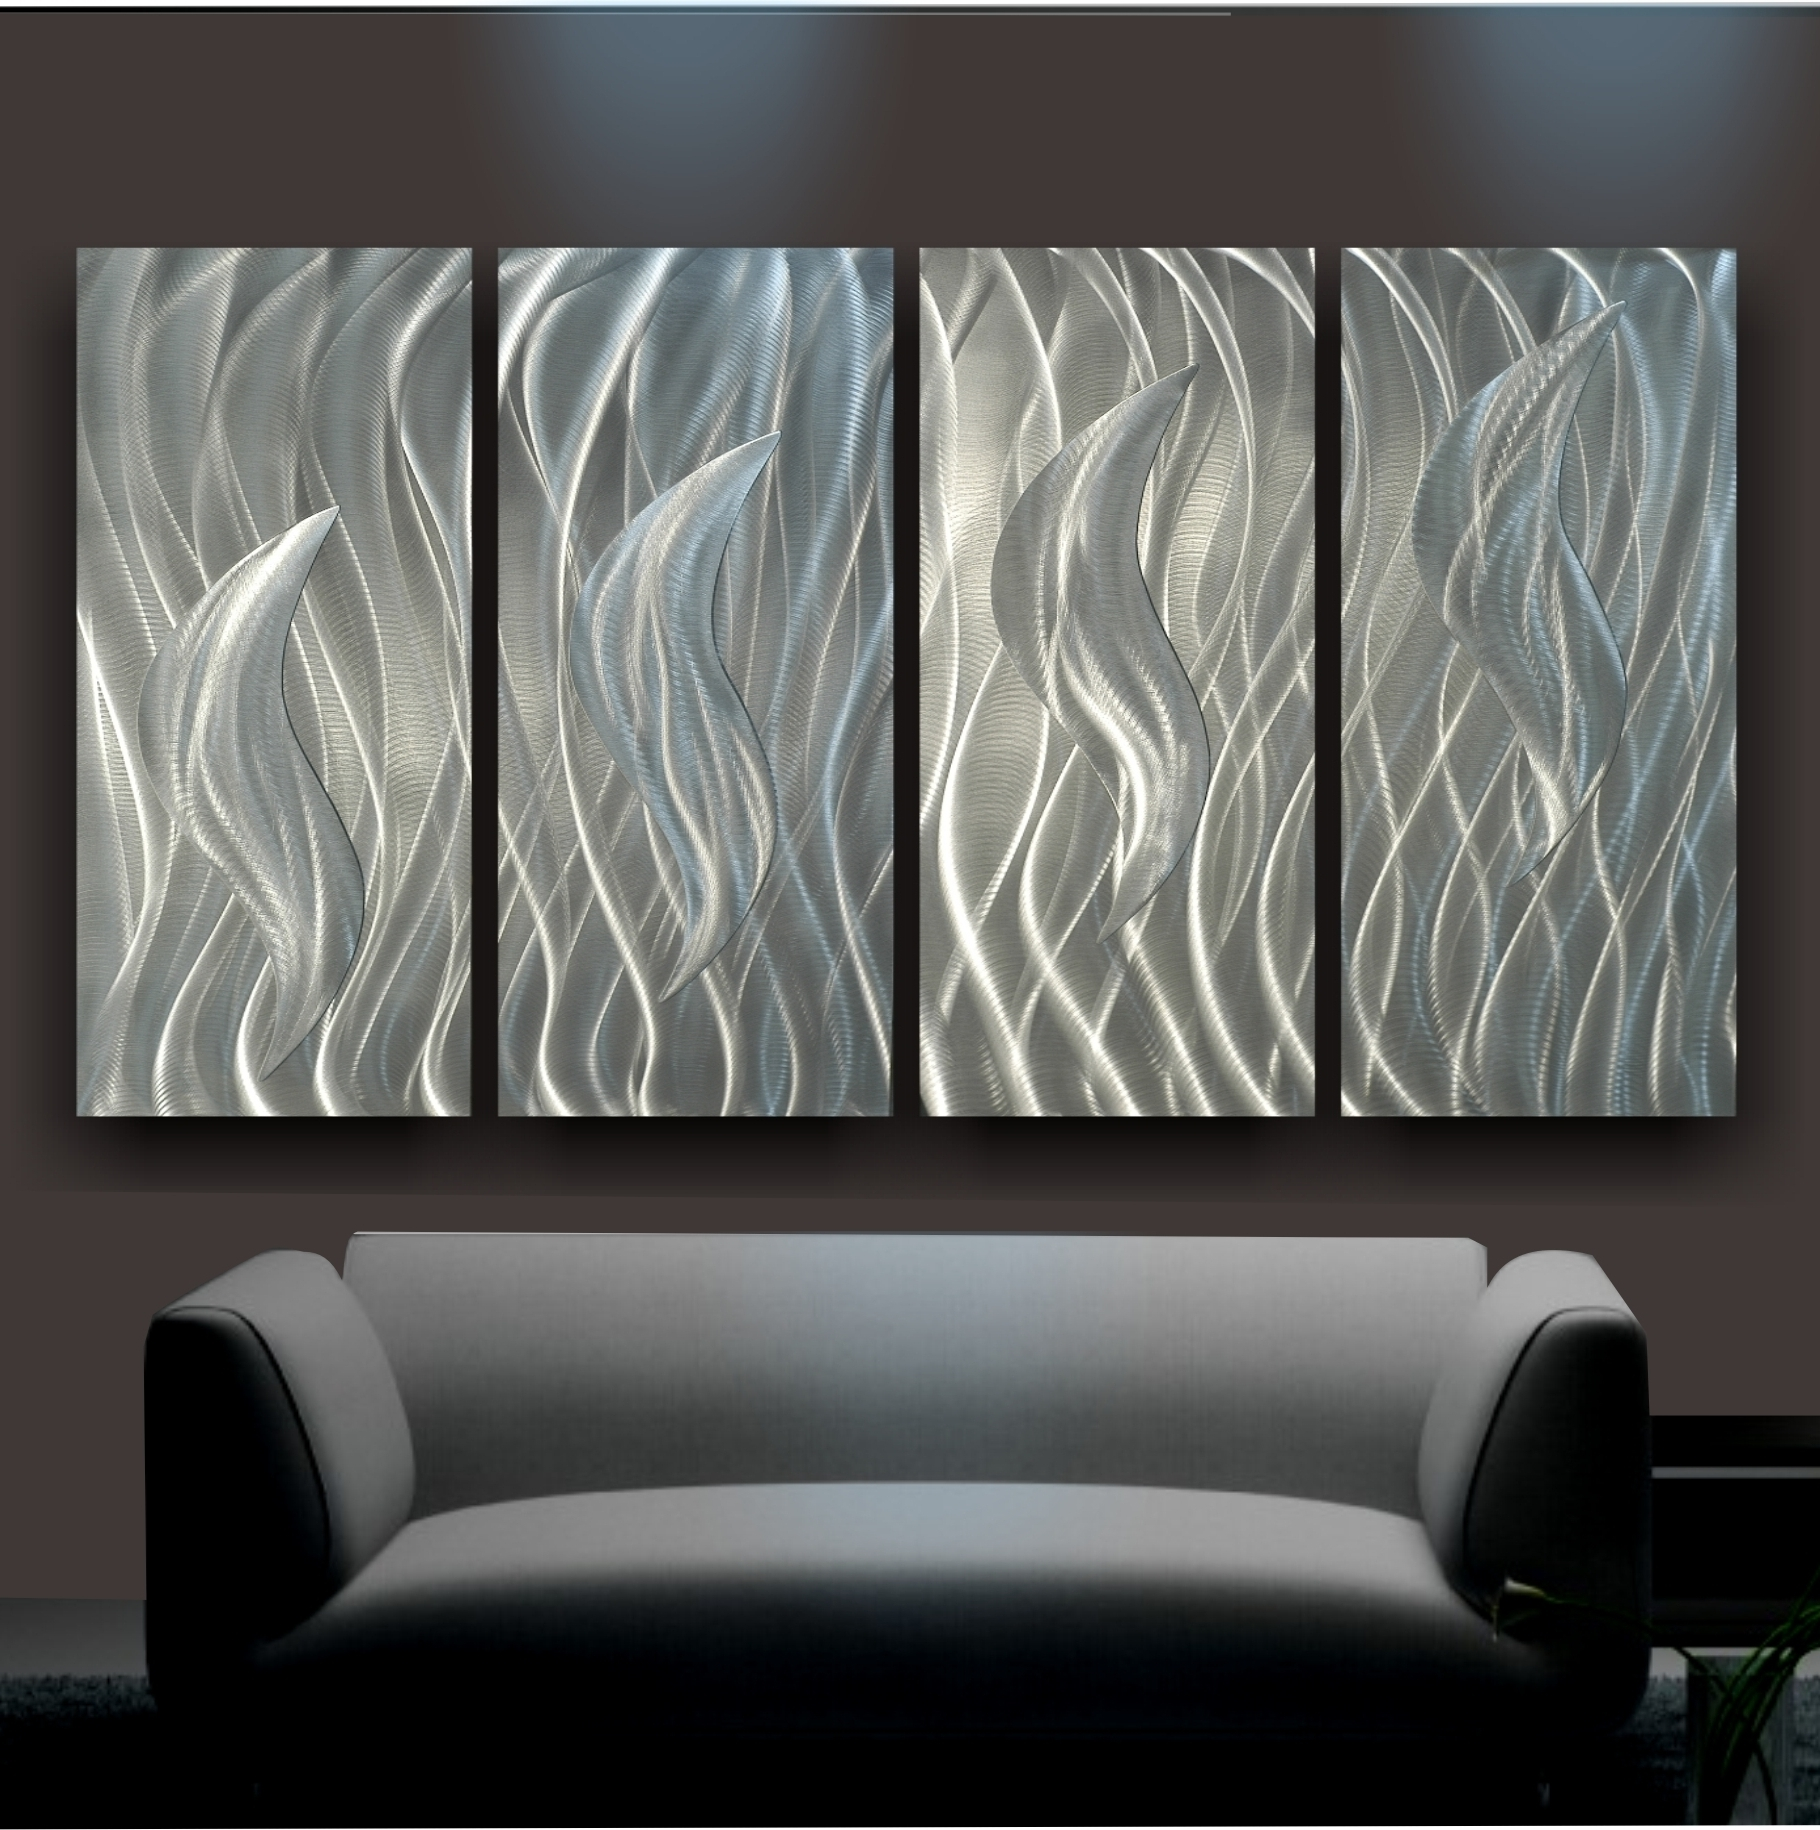 Metal Art For Wall Hangings Pertaining To Most Current Wall Art Ideas Design : Decorative Silver Metal Art For Walls (View 7 of 15)